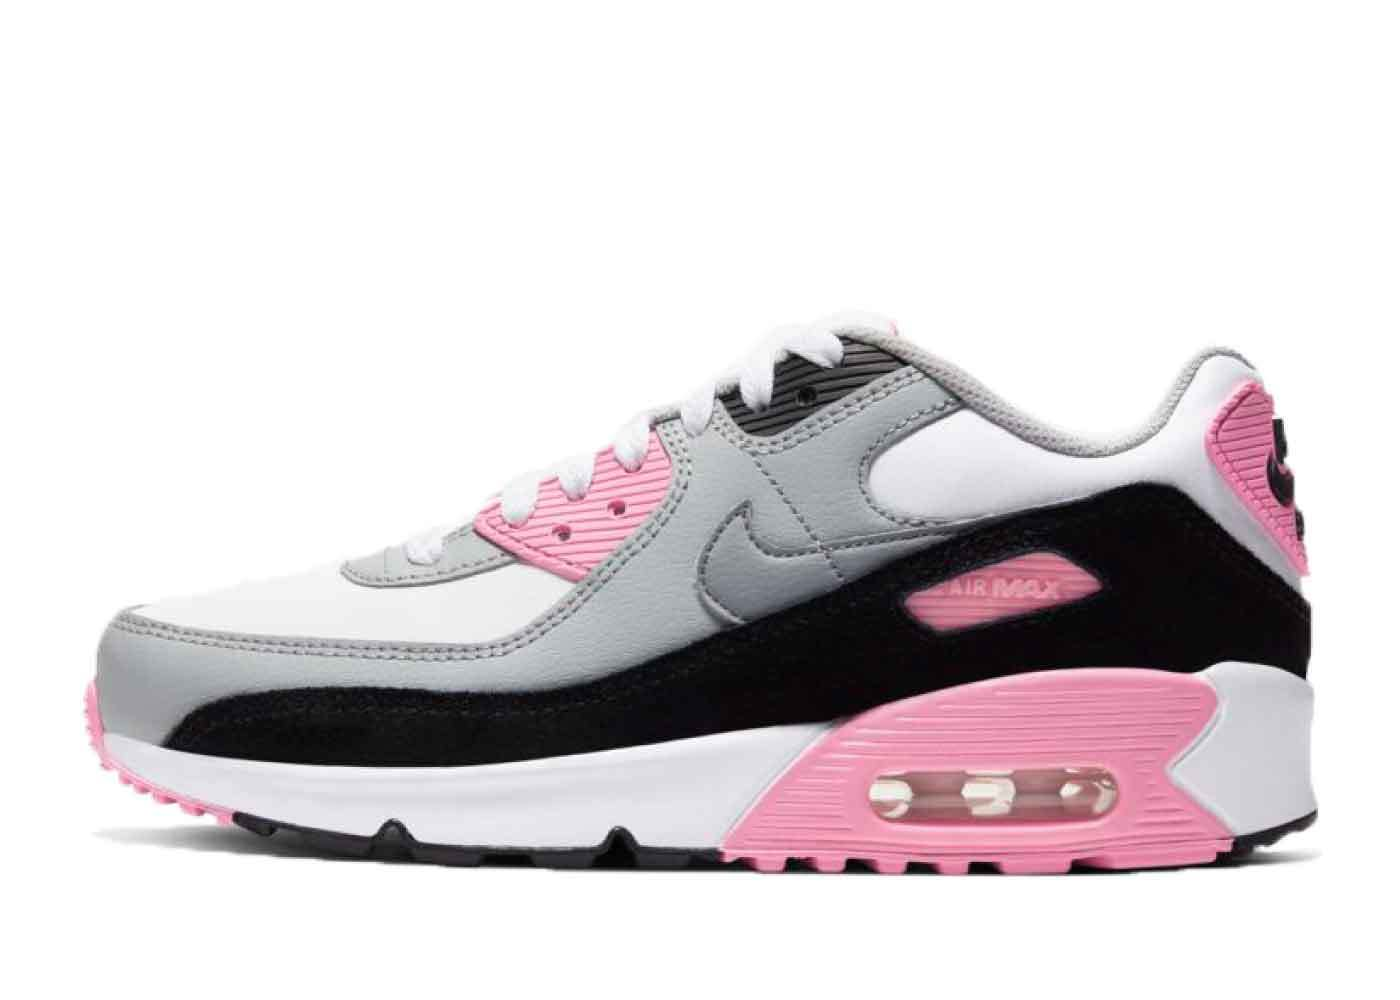 Nike Air Max 90 White/Particle Grey-Pink-Black Womens Little Kidsの写真